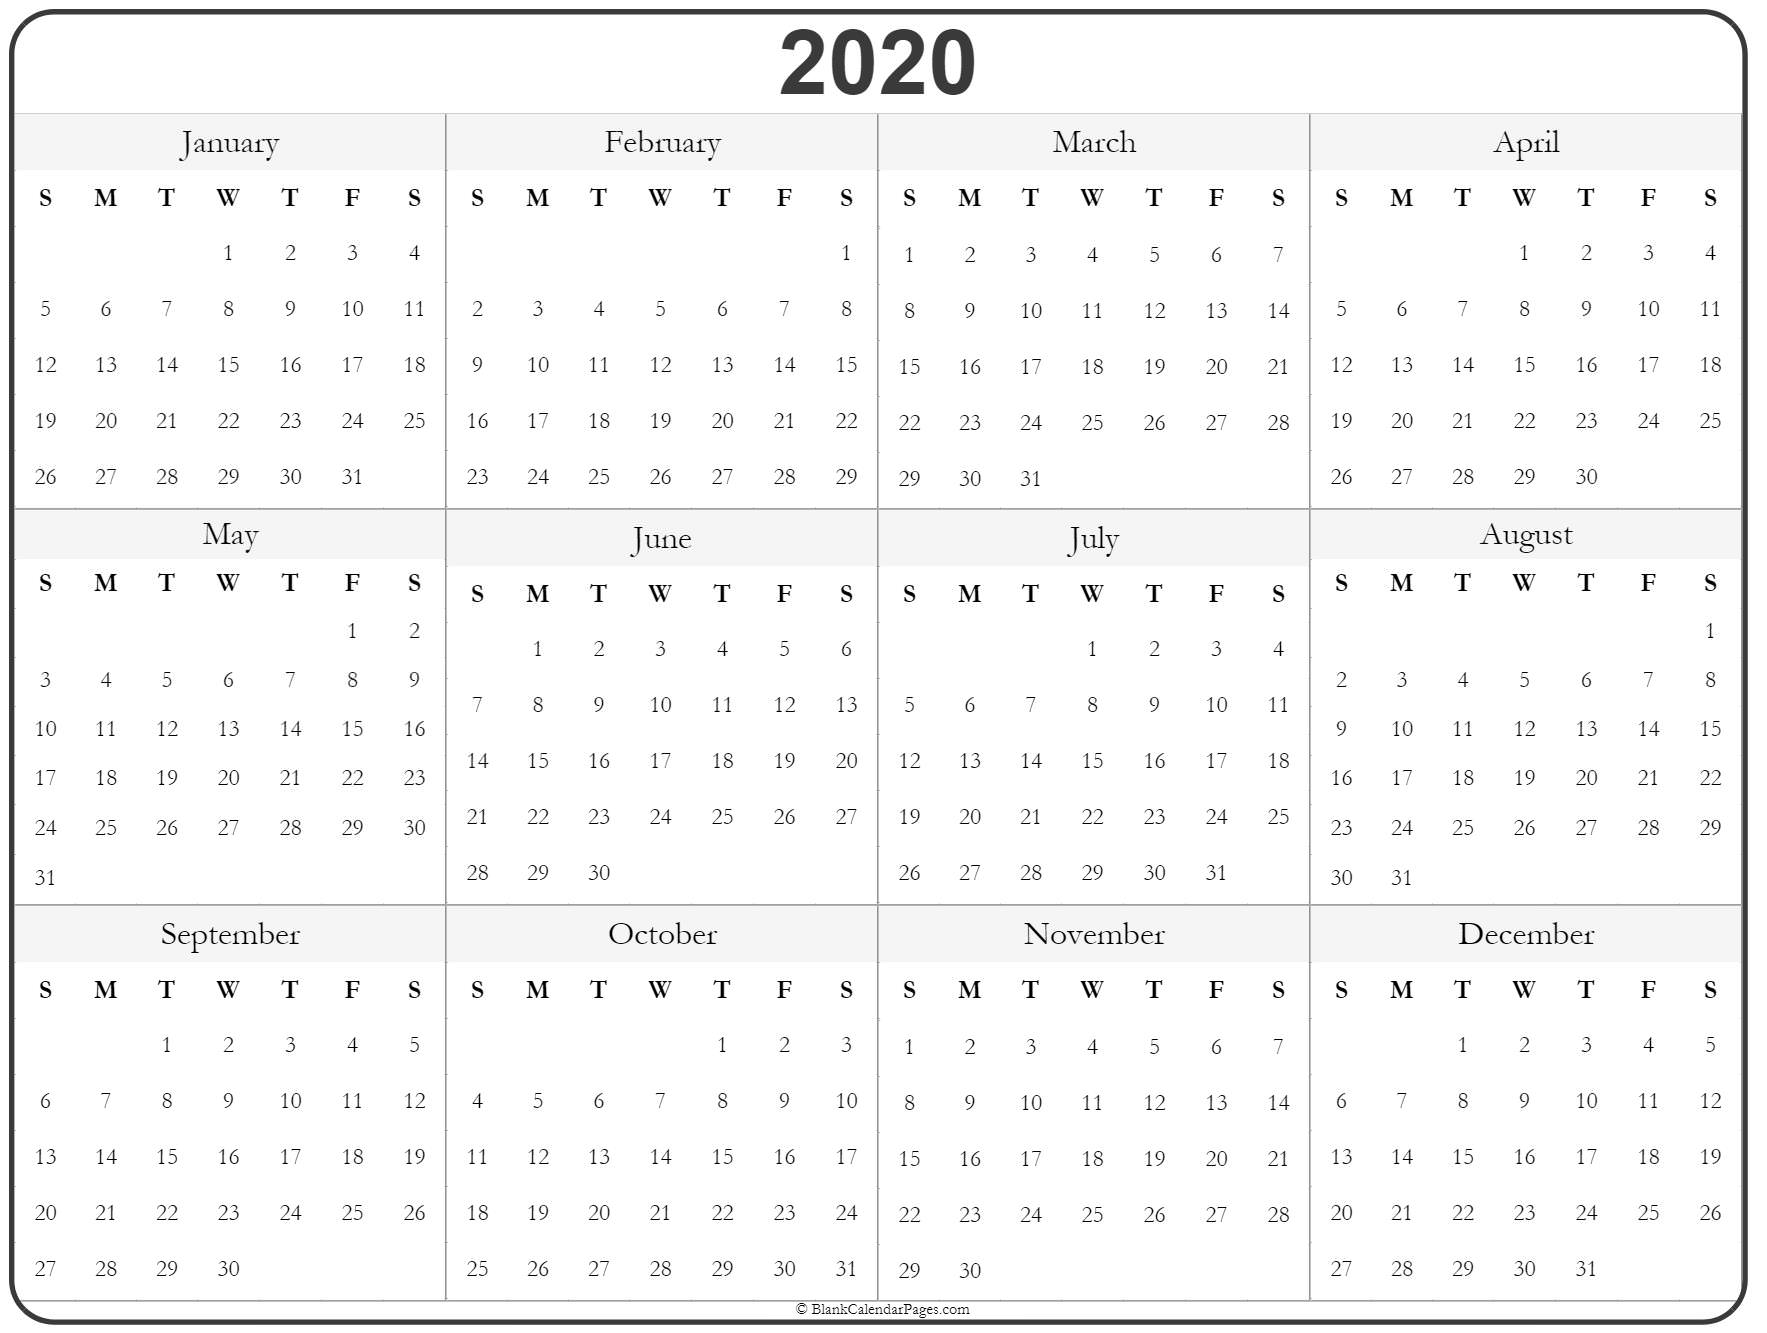 Printable 2020 Yearly Calendar 2020 year calendar | yearly printable